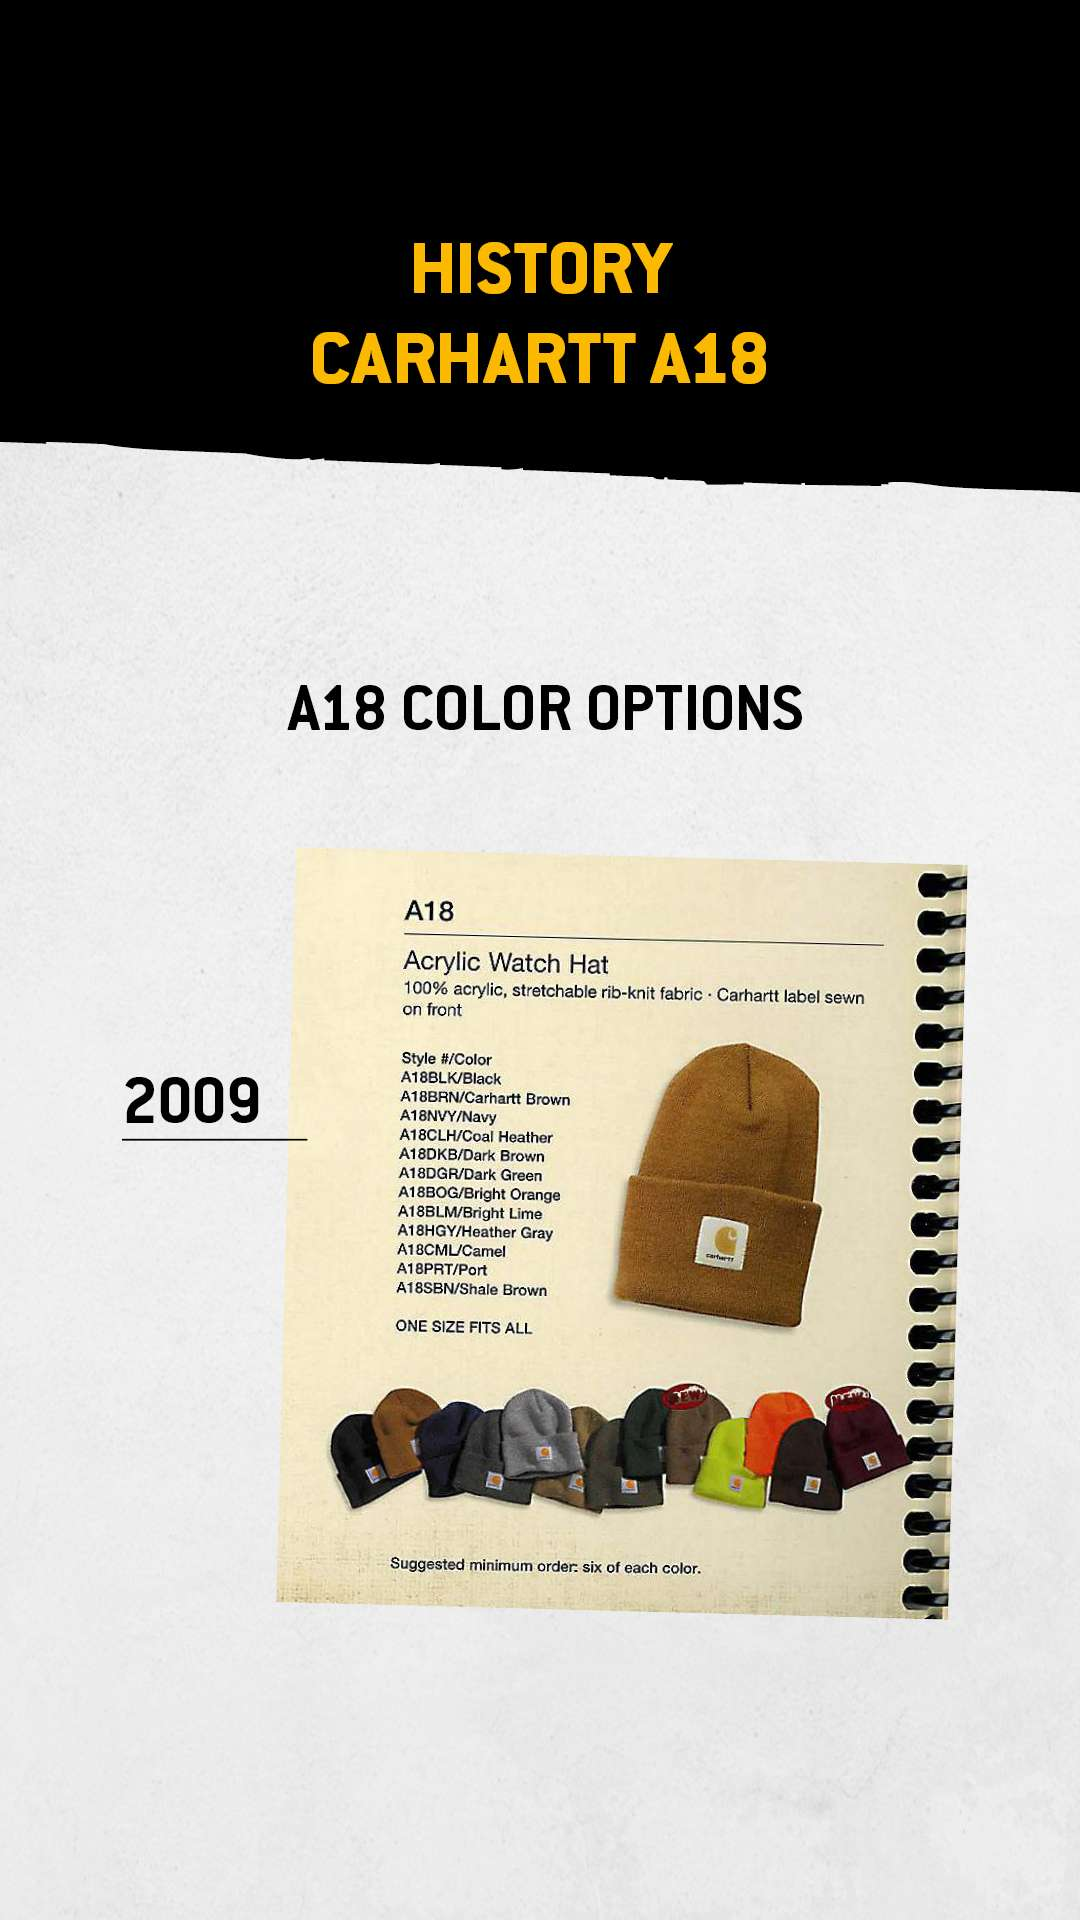 A18 color options, 2009